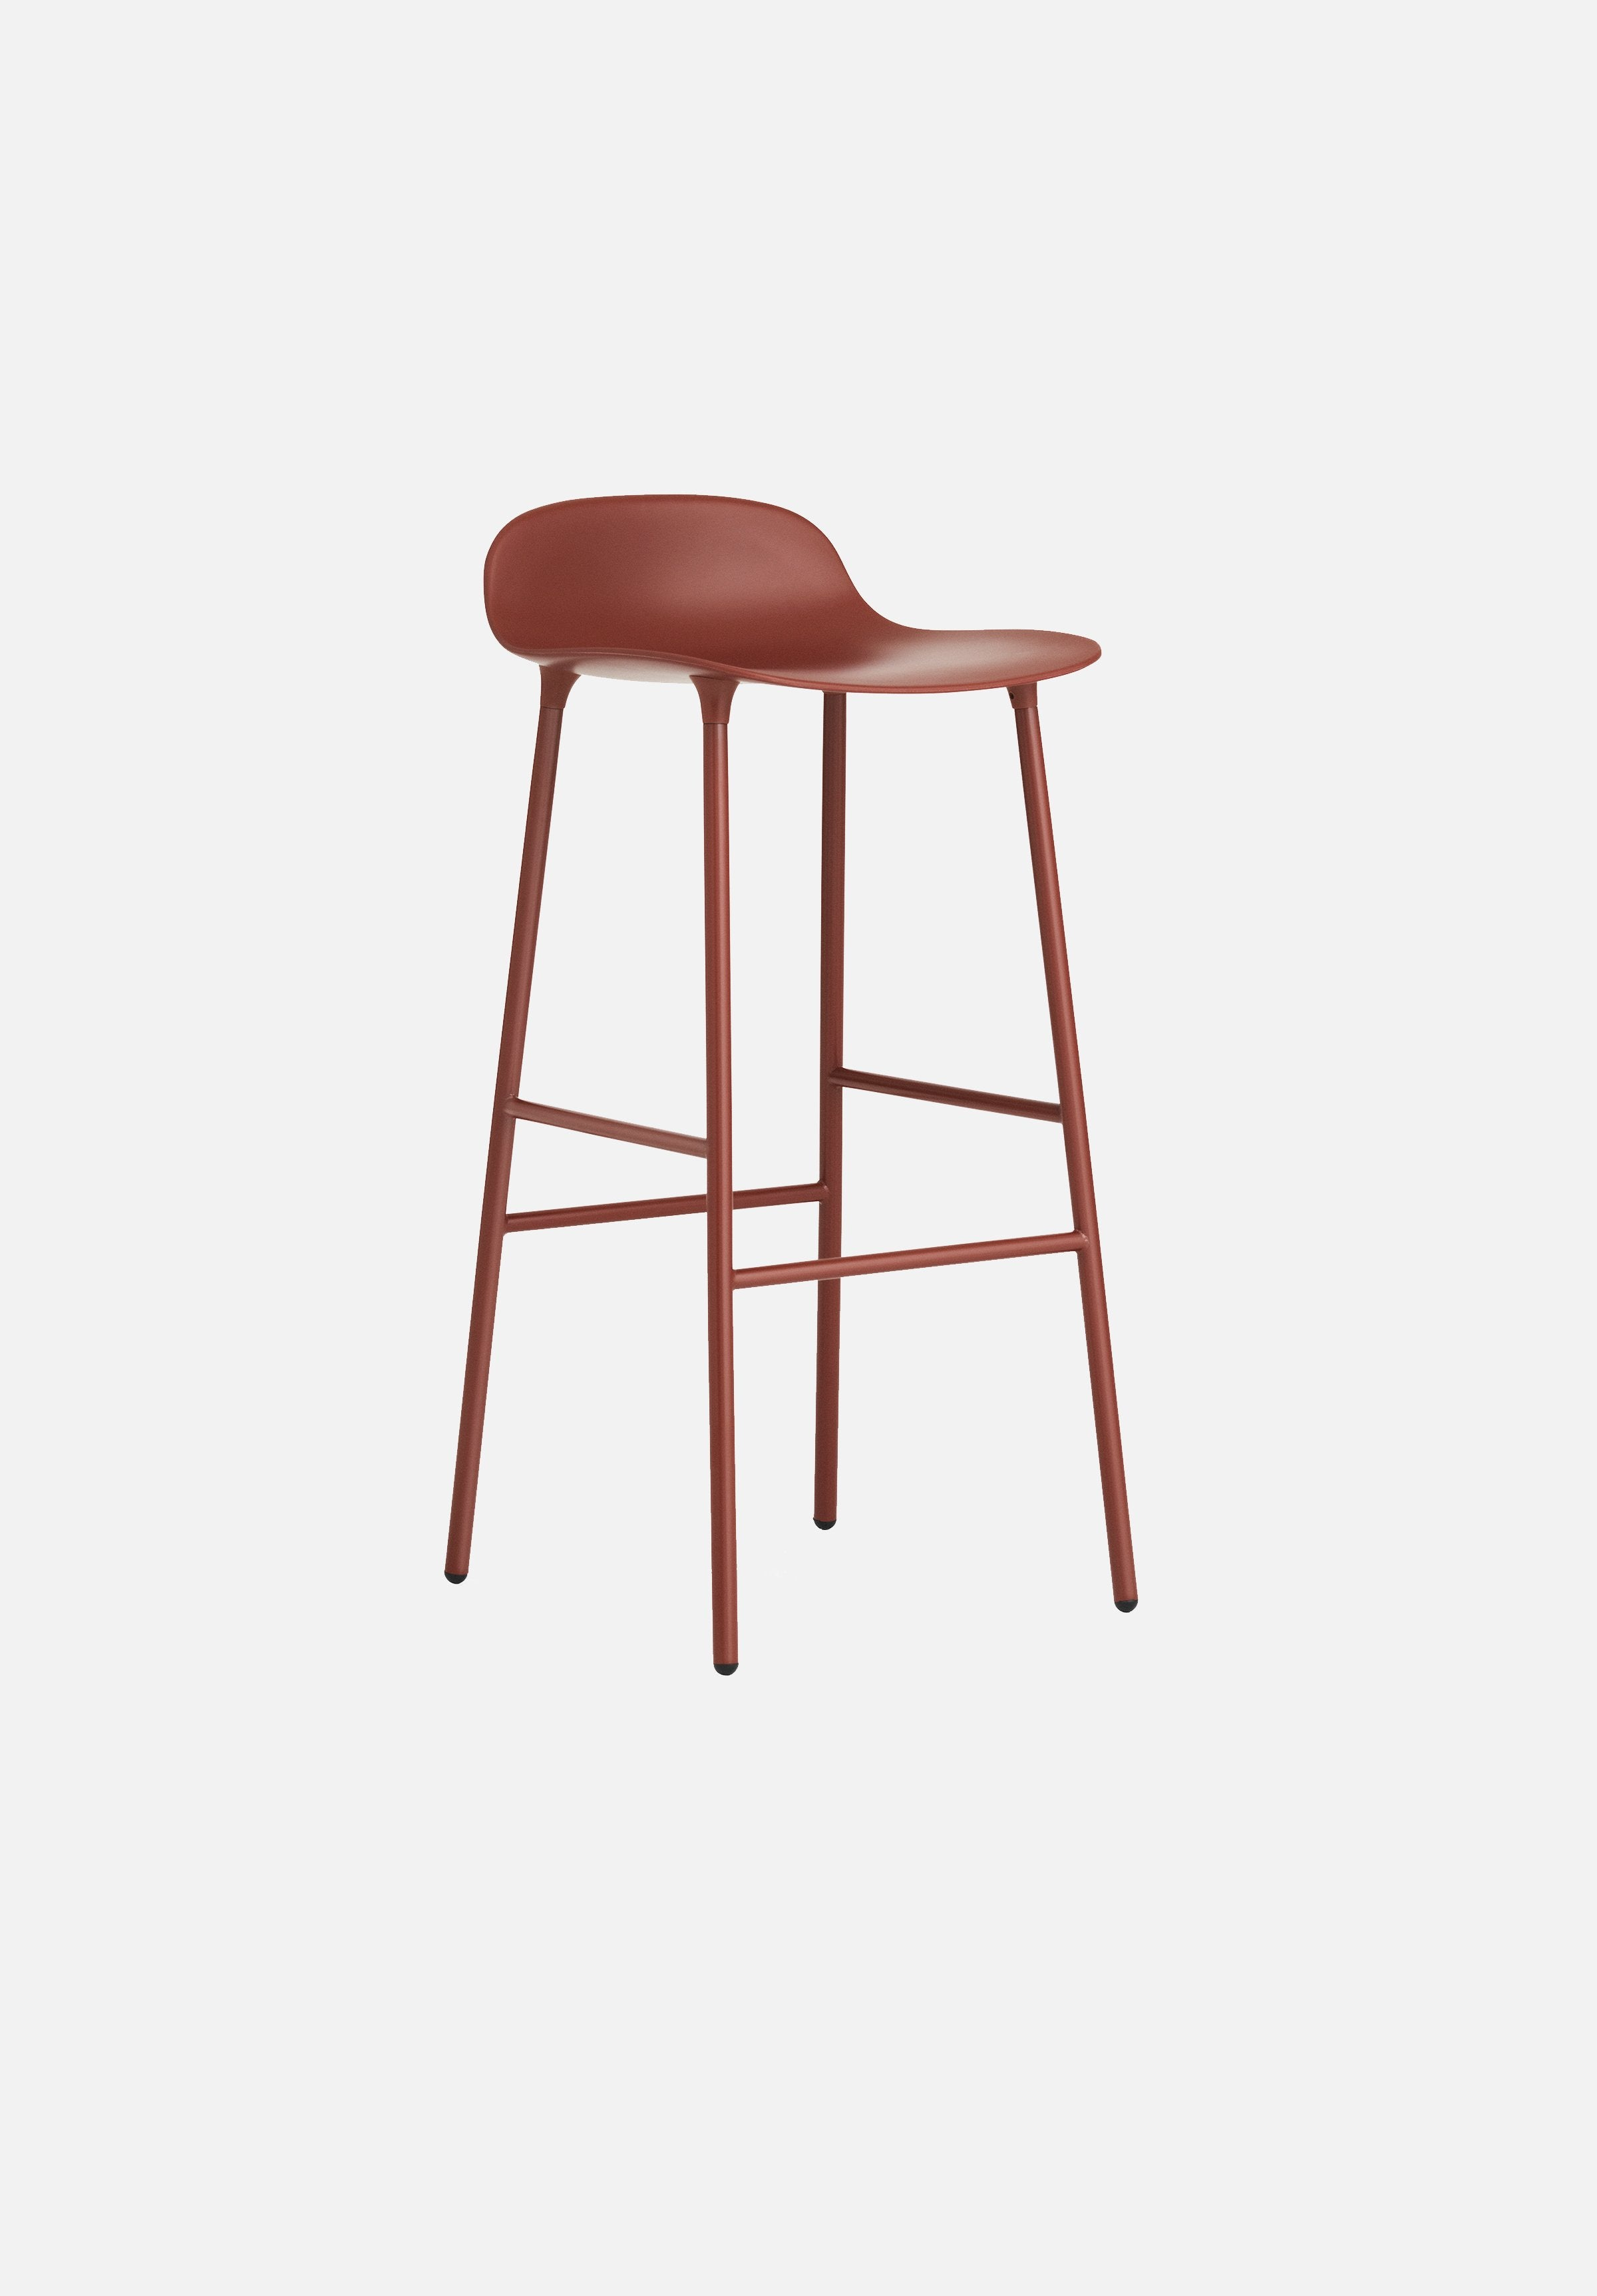 Form Stool — 75cm-Simon Legald-Normann Copenhagen-Red-Lacquered Steel-Average-canada-design-store-danish-denmark-furniture-interior